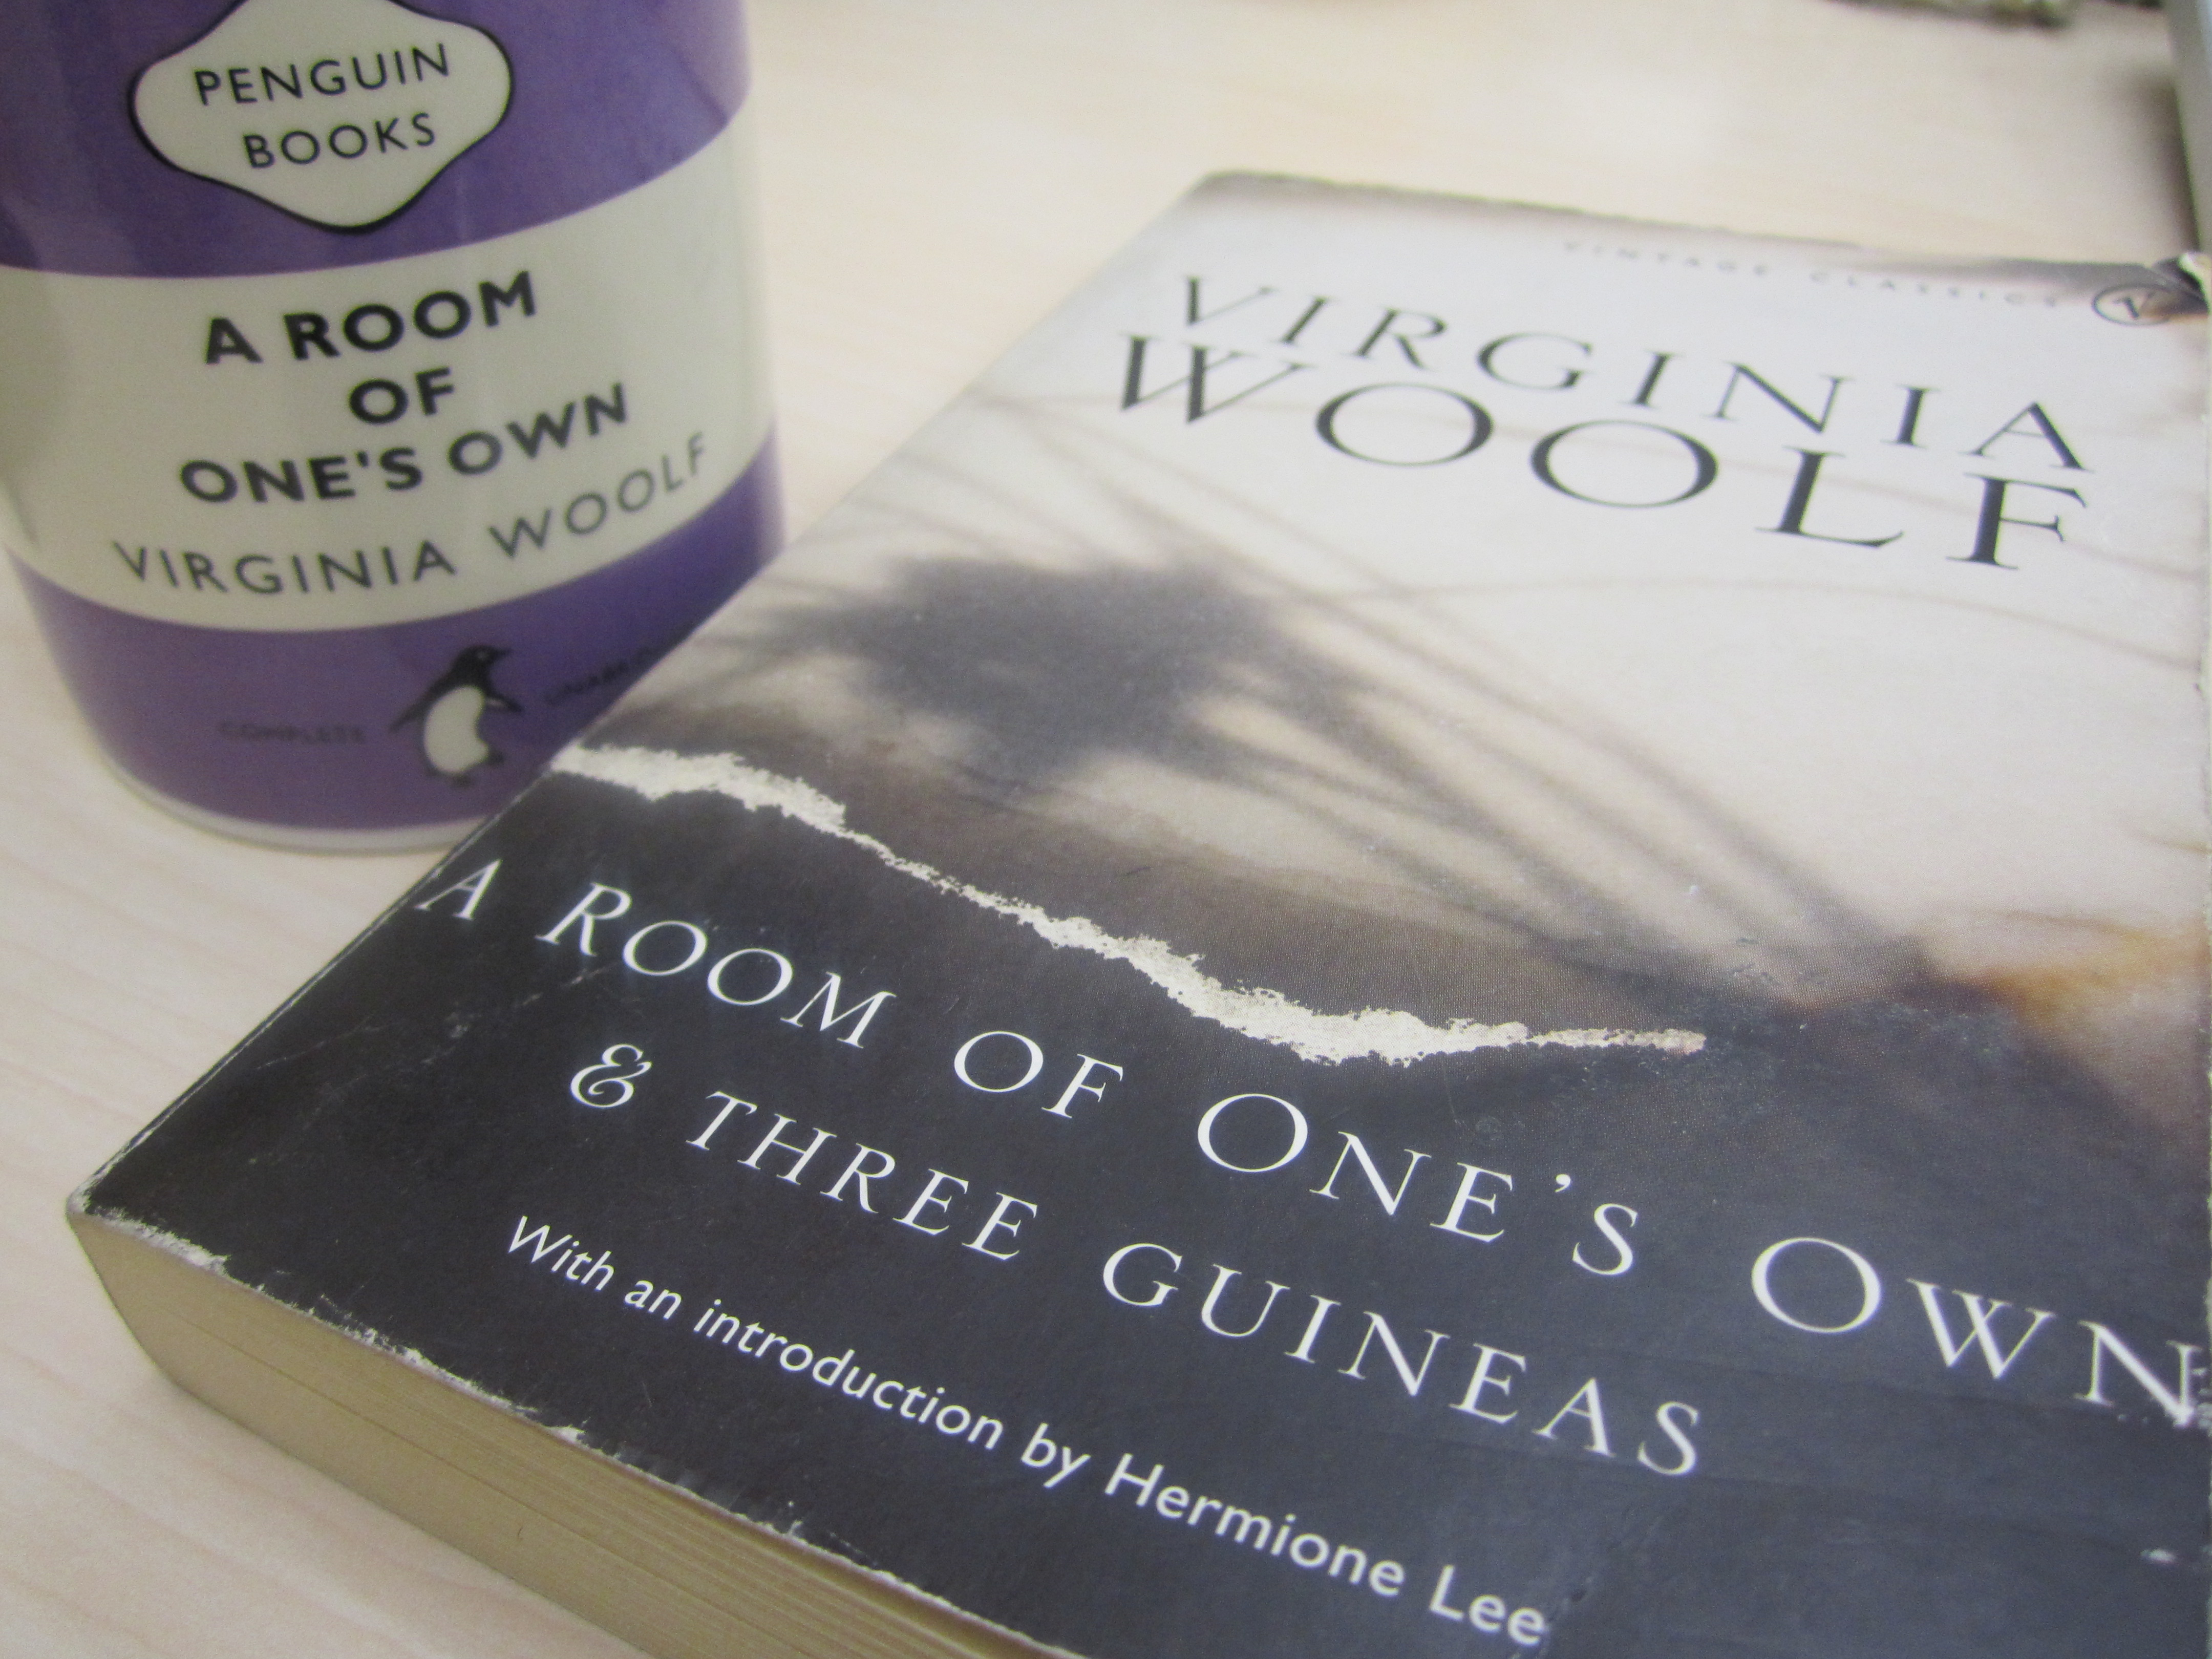 an analysis of the problems of women writers in a room of ones own by virginia woolf Redefining gender roles: the image of women in virginia woolf's 'to  namely a room of one's own  the image of women in virginia woolf's 'to the.